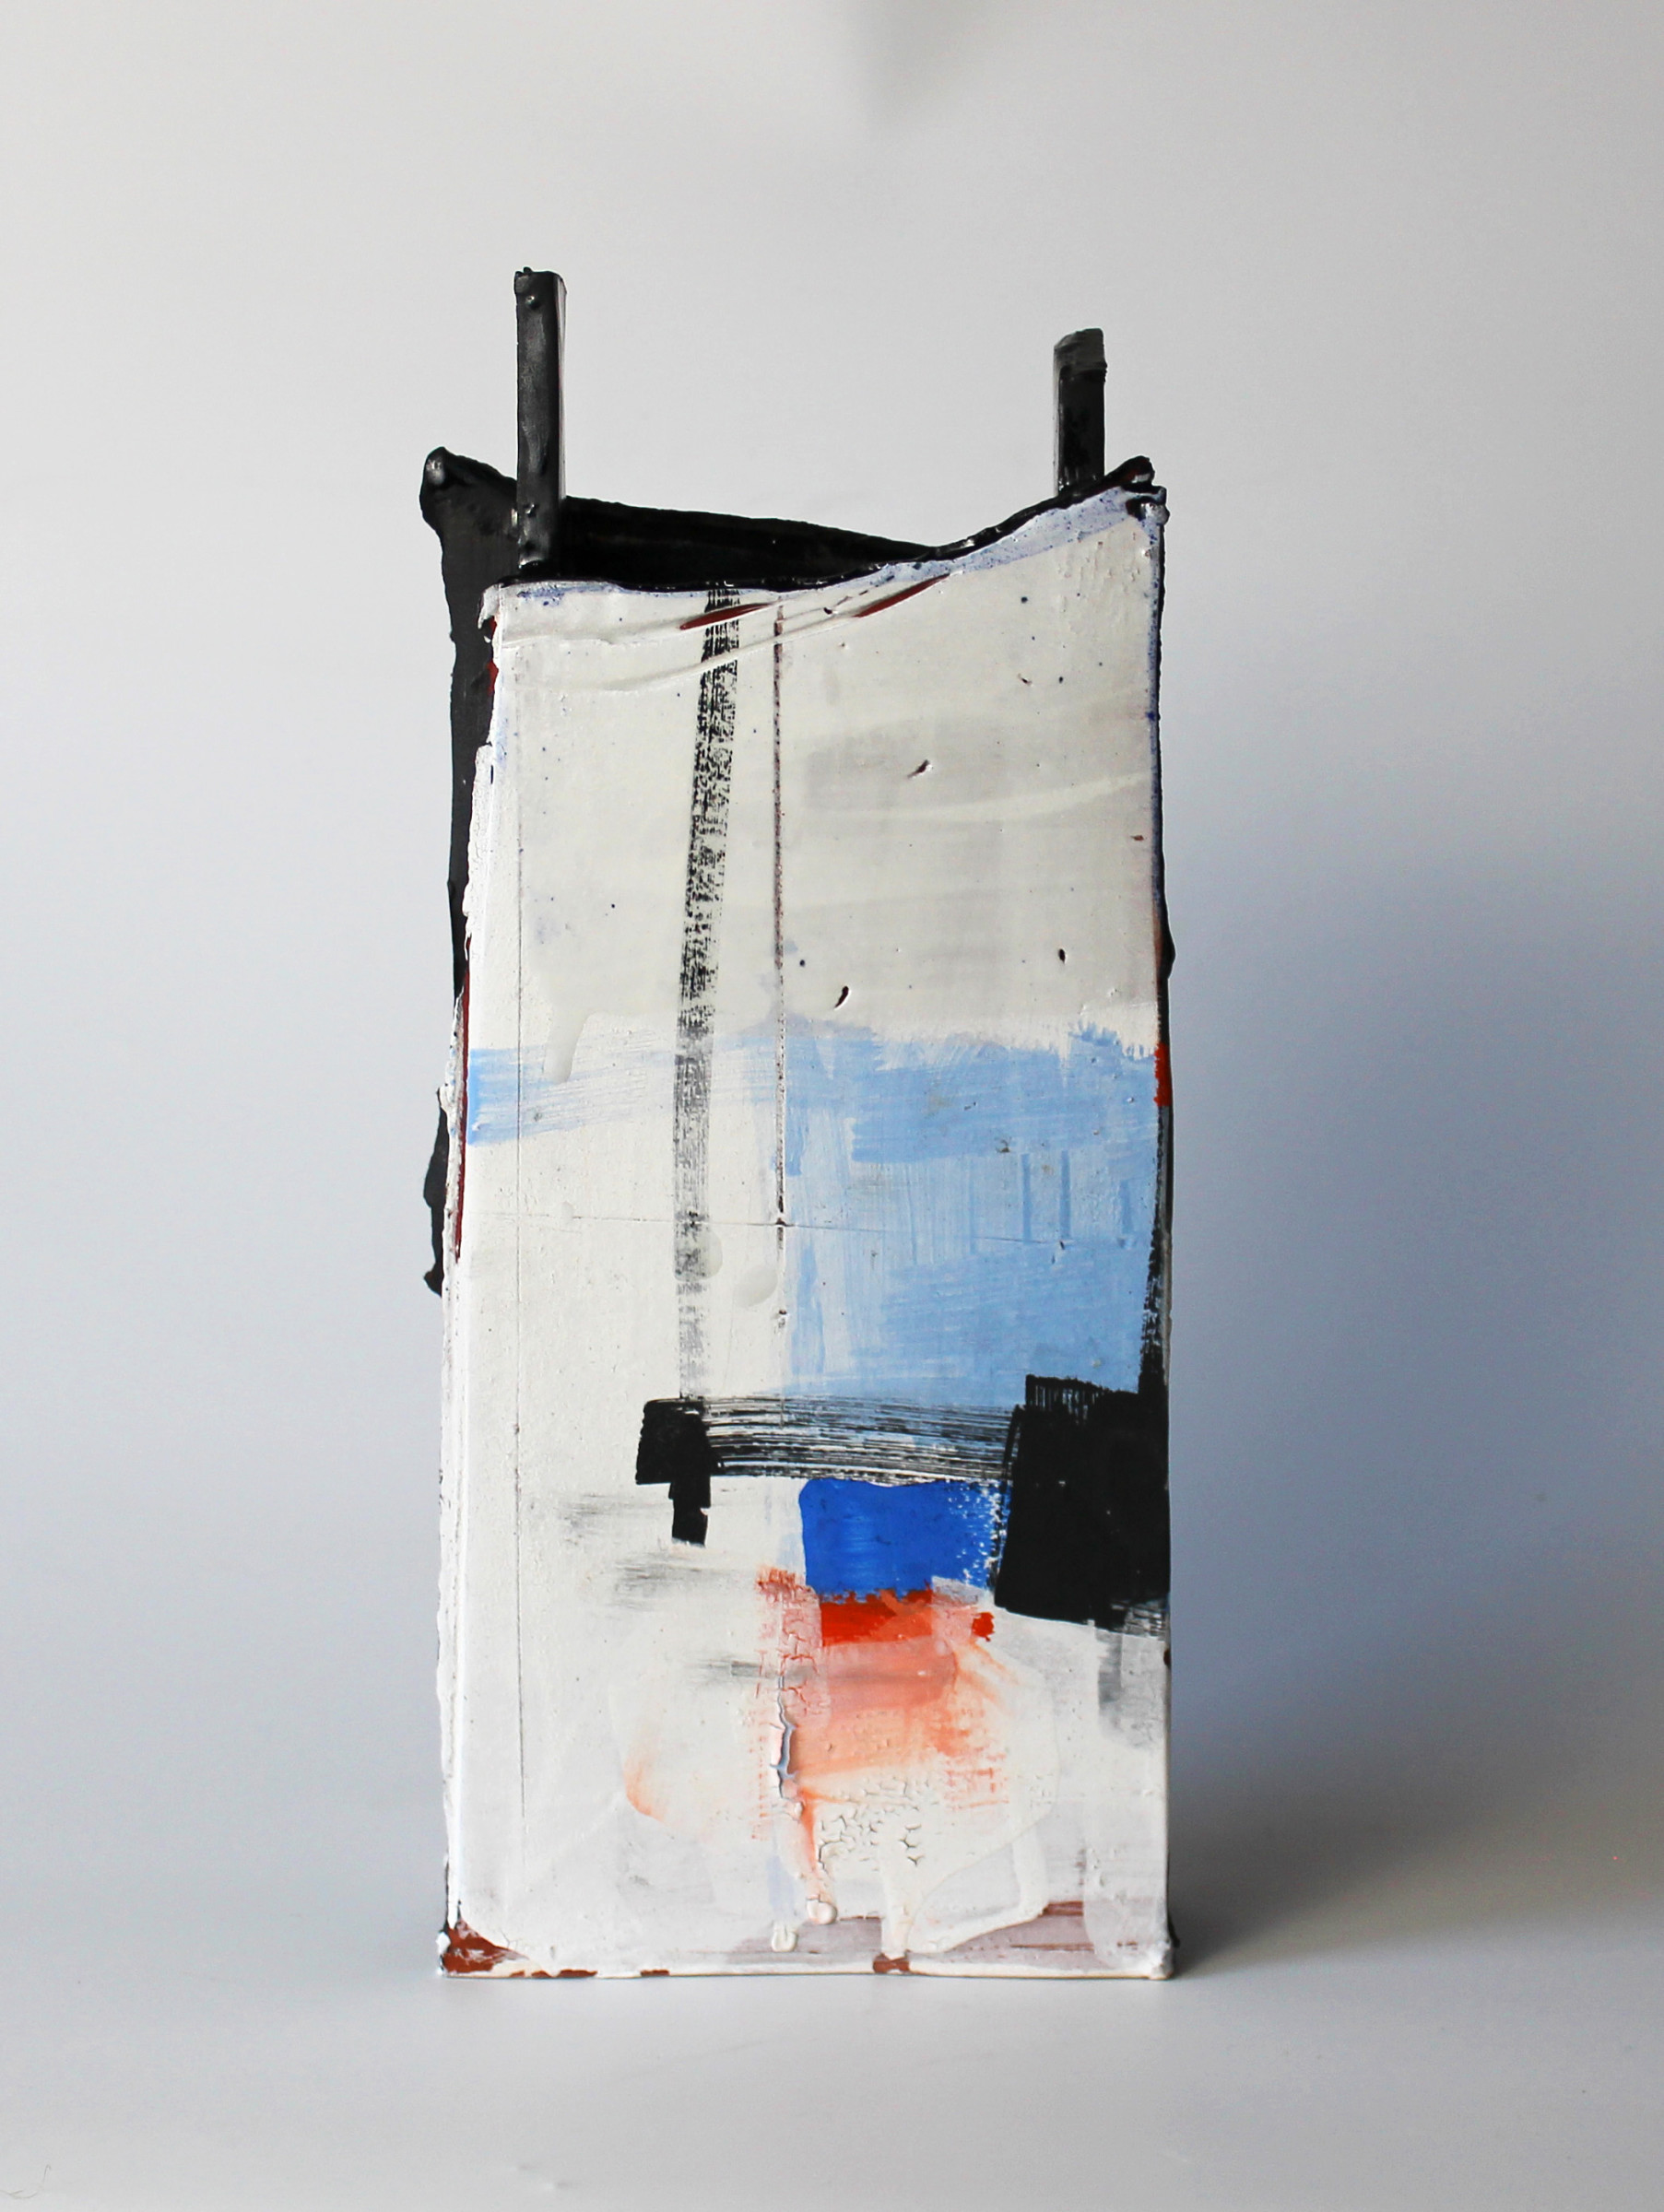 "<span class=""link fancybox-details-link""><a href=""/artists/34-barry-stedman/works/4143-barry-stedman-slab-vessel-harbour-ii-series-2017/"">View Detail Page</a></span><div class=""artist""><strong>Barry Stedman</strong></div> <div class=""title""><em>Slab Vessel 'Harbour II' Series</em>, 2017</div> <div class=""signed_and_dated"">signed by artist</div> <div class=""medium"">earthenware</div> <div class=""dimensions"">33 x 14 x 5 cm<br /> 13 x 5 1/2 x 2 inches</div><div class=""copyright_line"">OwnArt: £ 35.5 x 10 Months, 0% APR</div>"